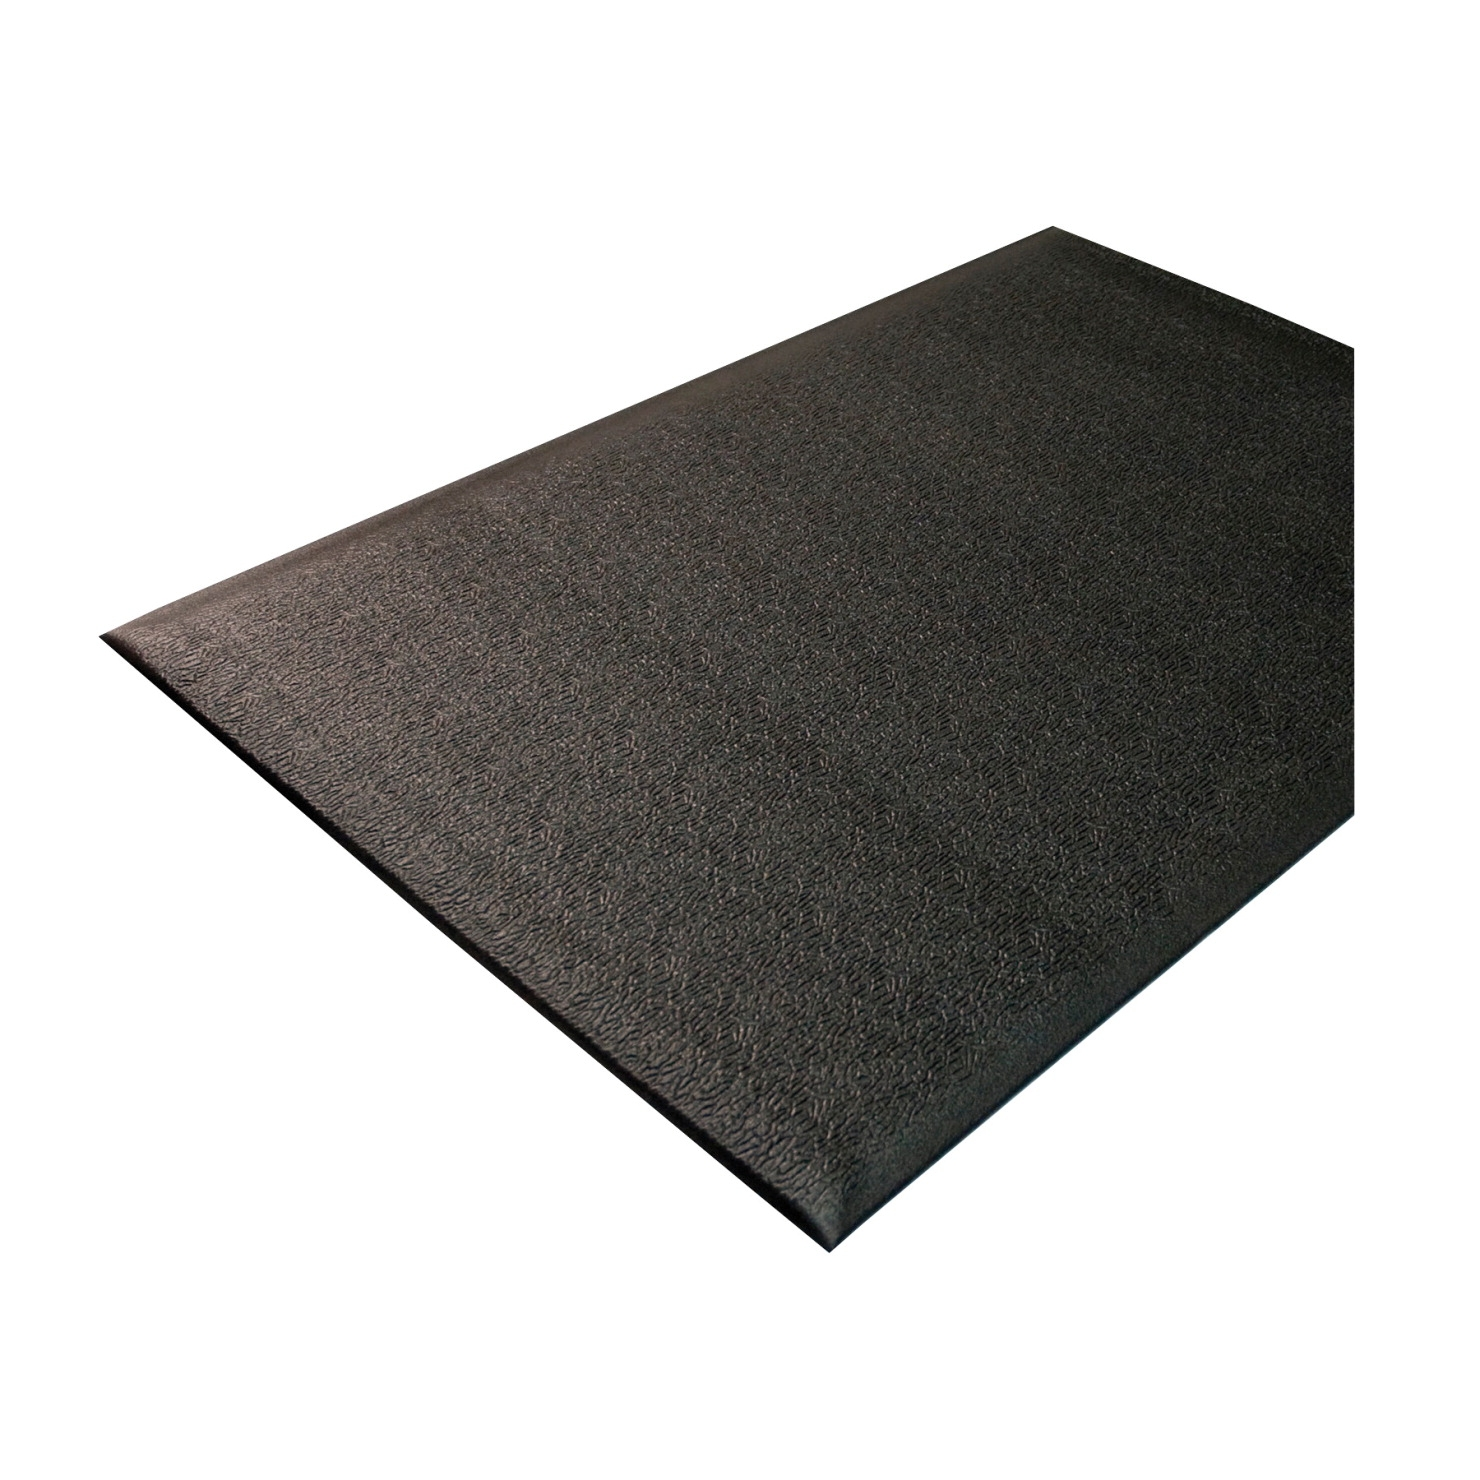 Genuine Joe Soft Step Anti-fatigue Mat; 3 X 5 Ft; 3/8 In Thickness; Nitrile Rubber/vinyl; Black - 1310536 - Baseball And Softball Baseball Pitching Rubbers 1310536